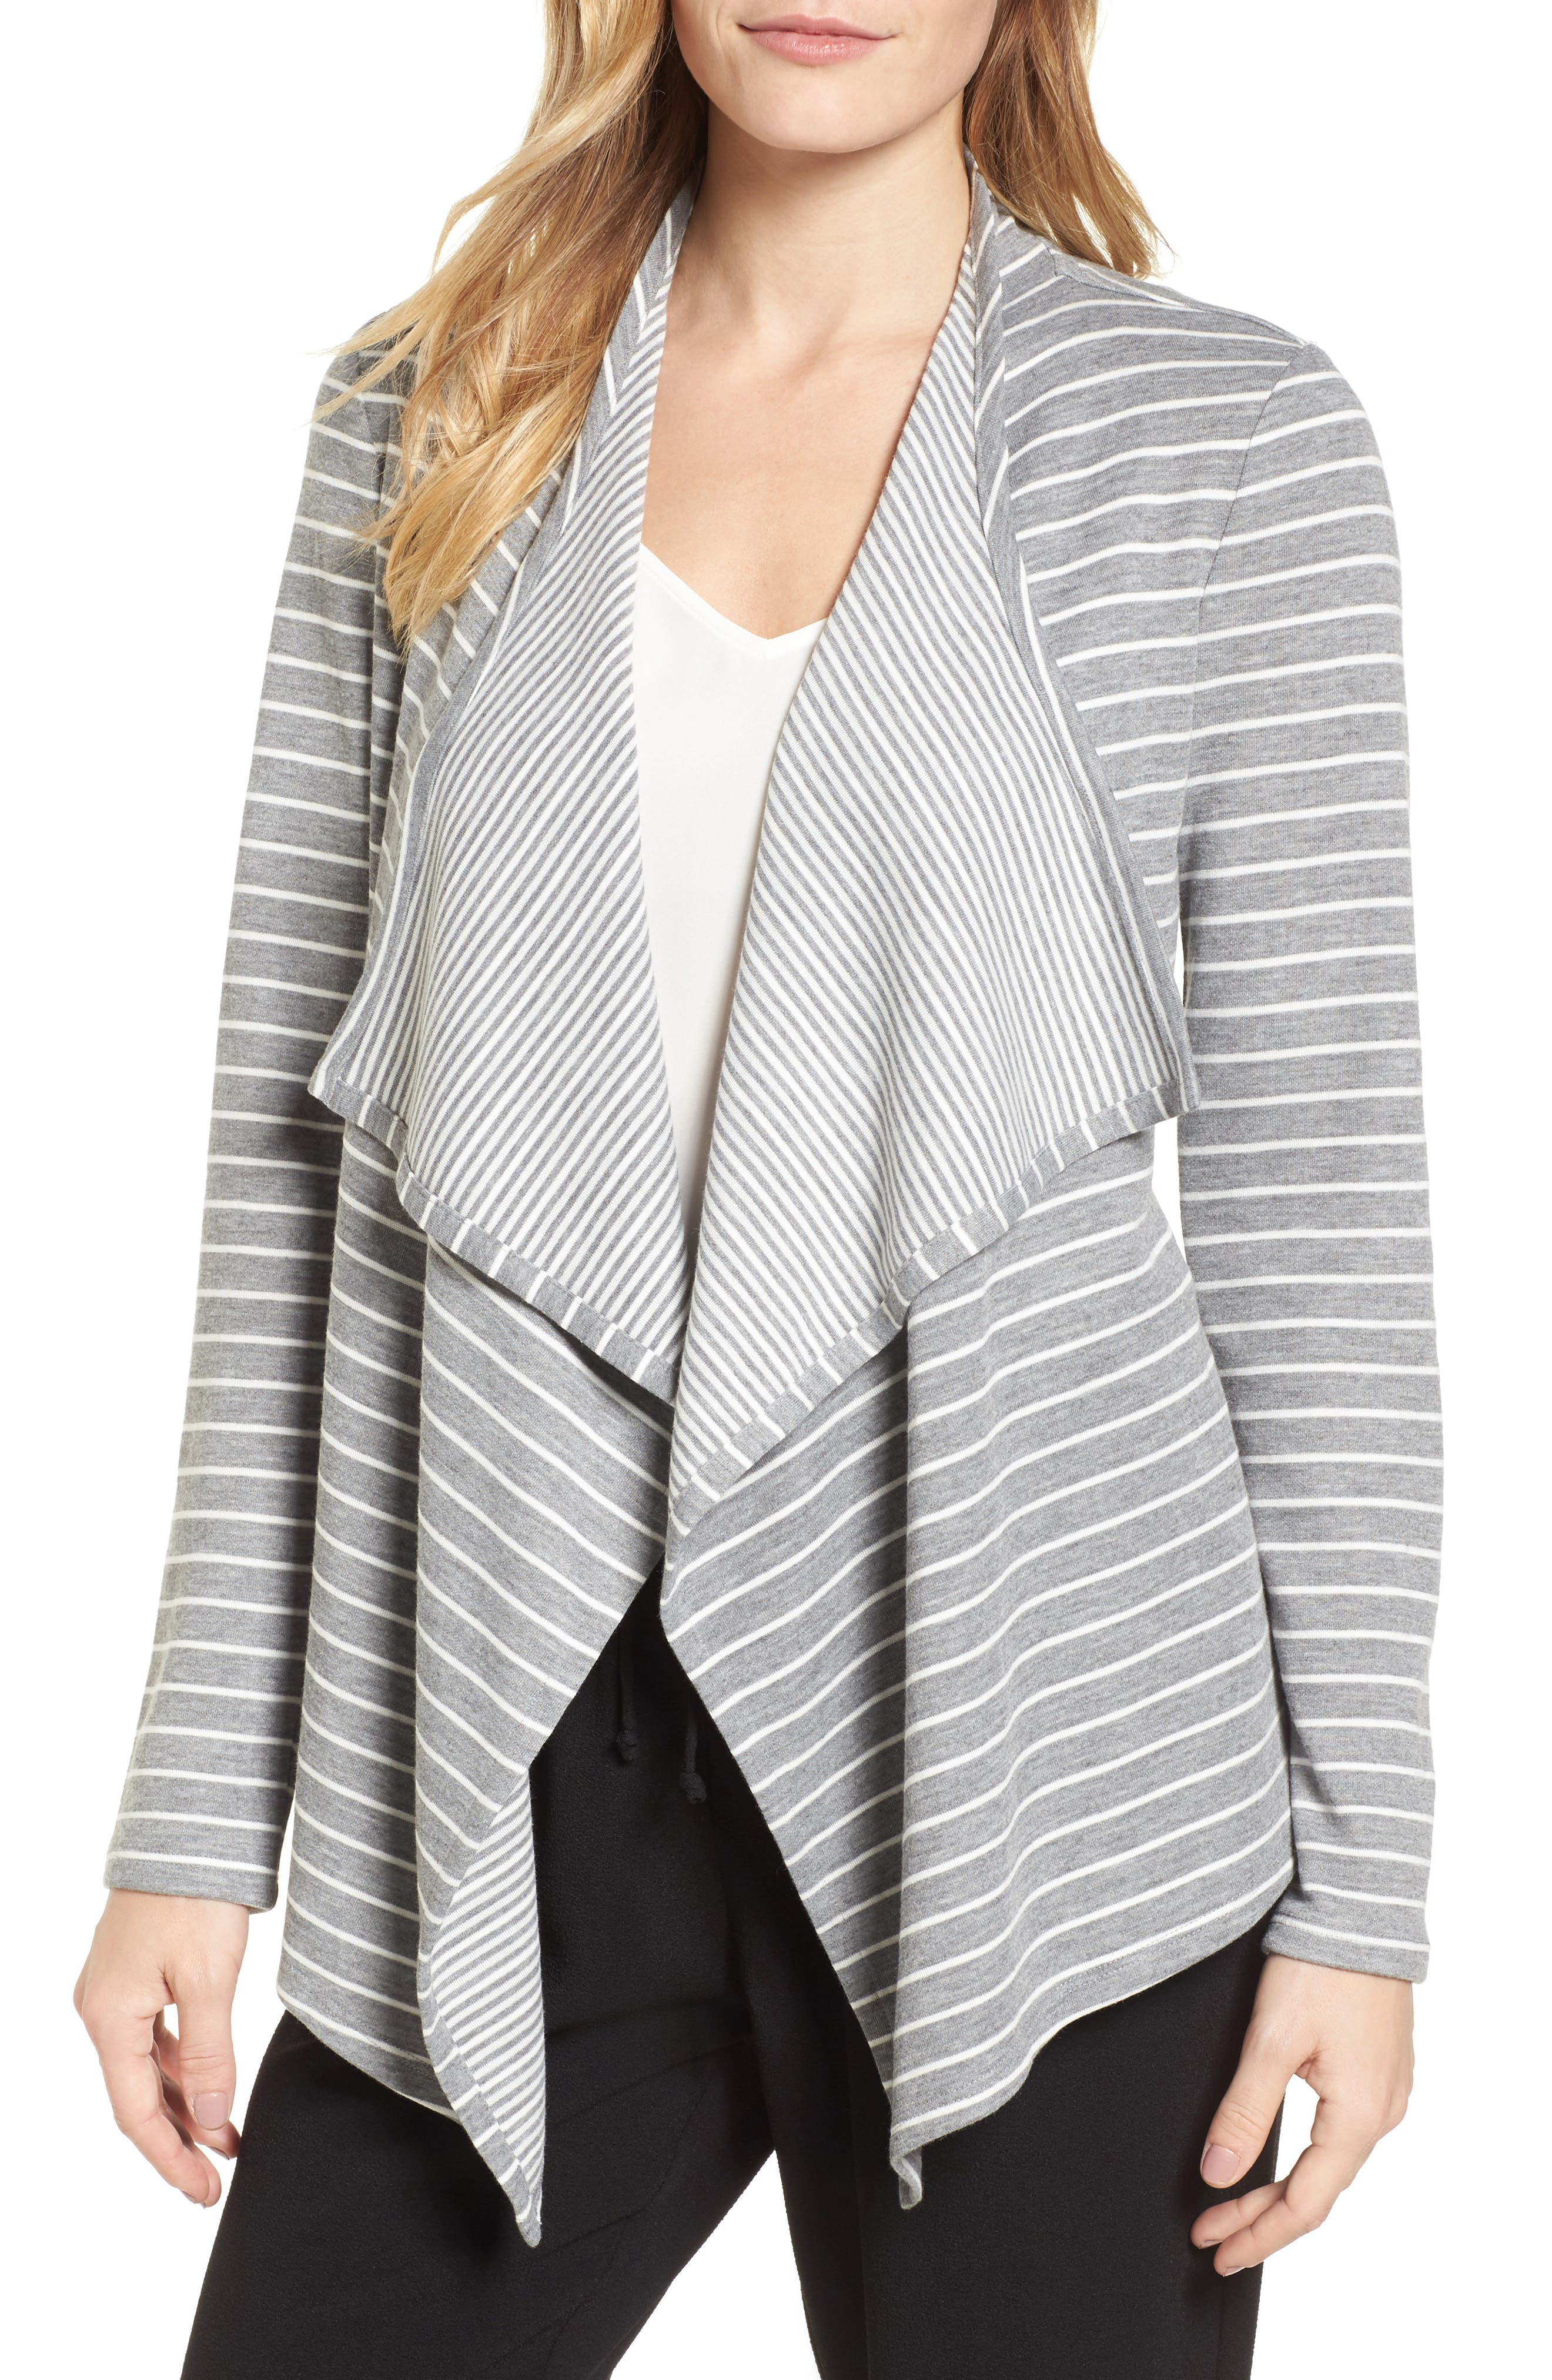 Mixed Stripe Cardigan,                         Main,                         color, 050-Grey Heather